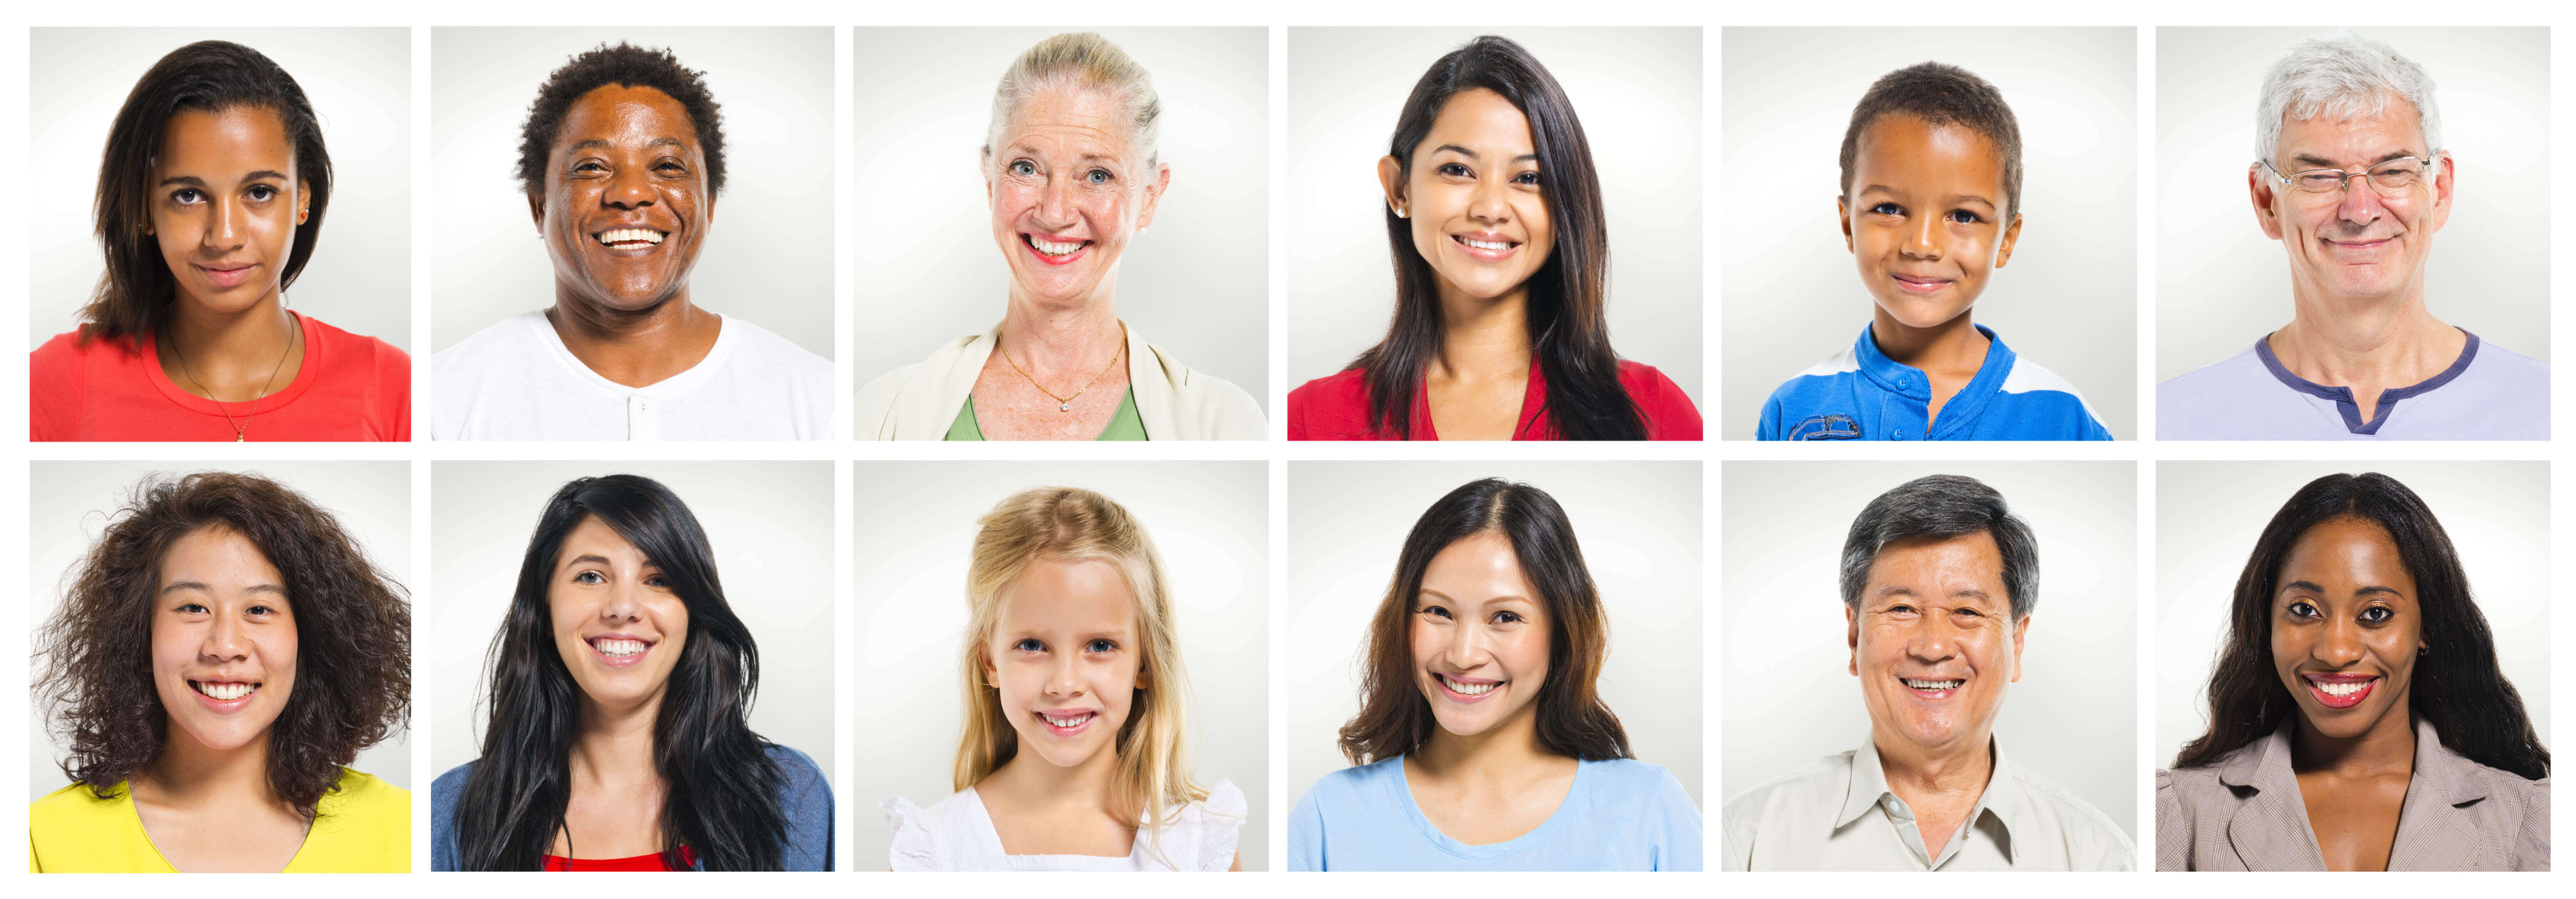 A group of multi-ethnic people. Individual photo boxes are arranged in an array. The boxes each contain a head-and-shoulders picture of a person smiling against a light gray background. The people are both male and female and range from young children to older adults.